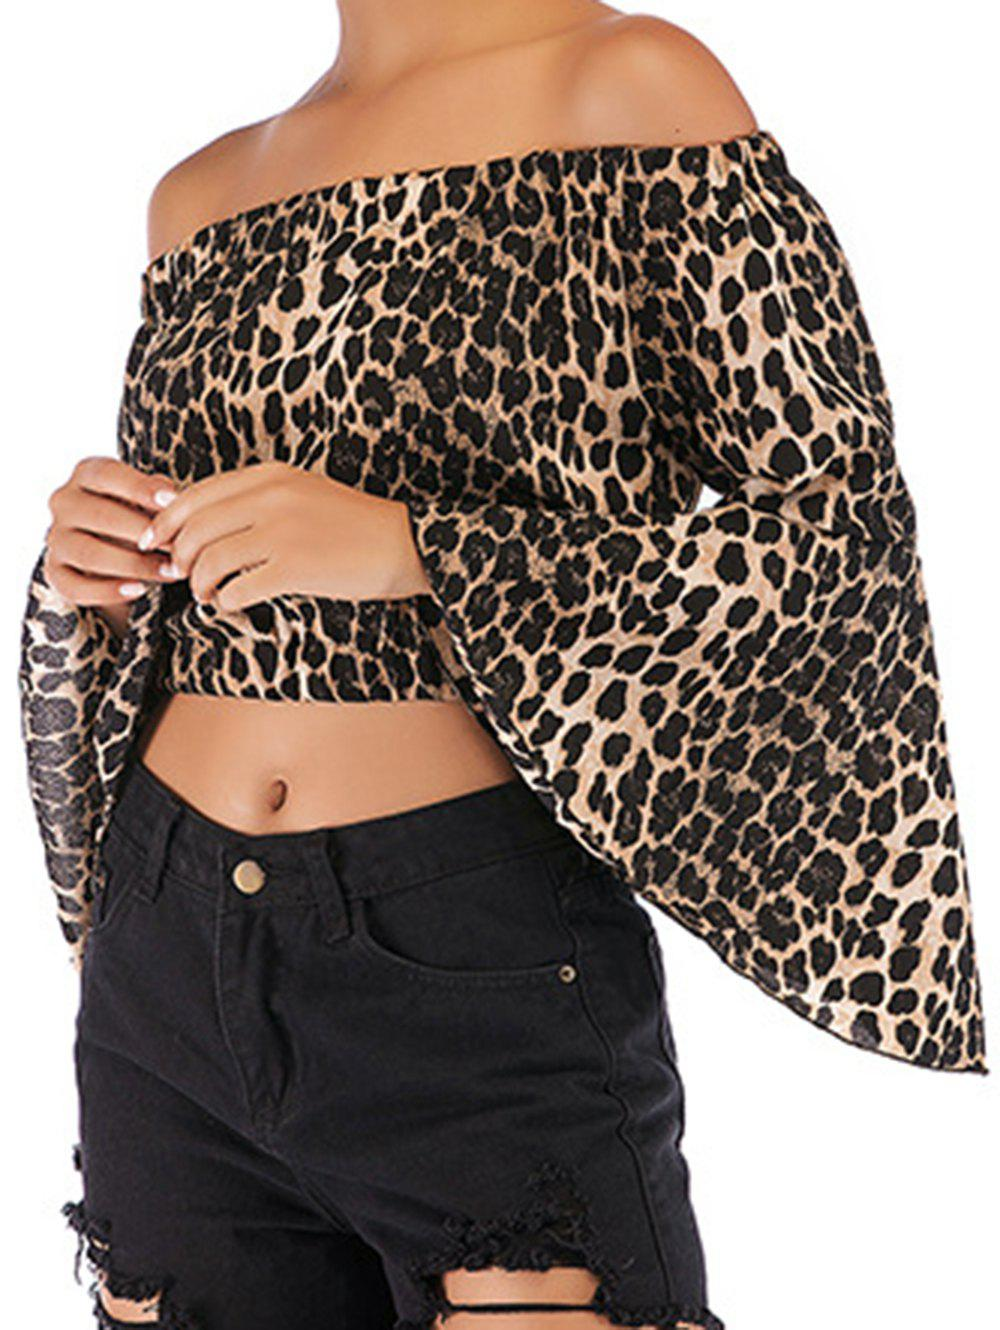 Fashion Womens Fashion Off Shoulder Tops Sexy Leopard Print Crop Tops